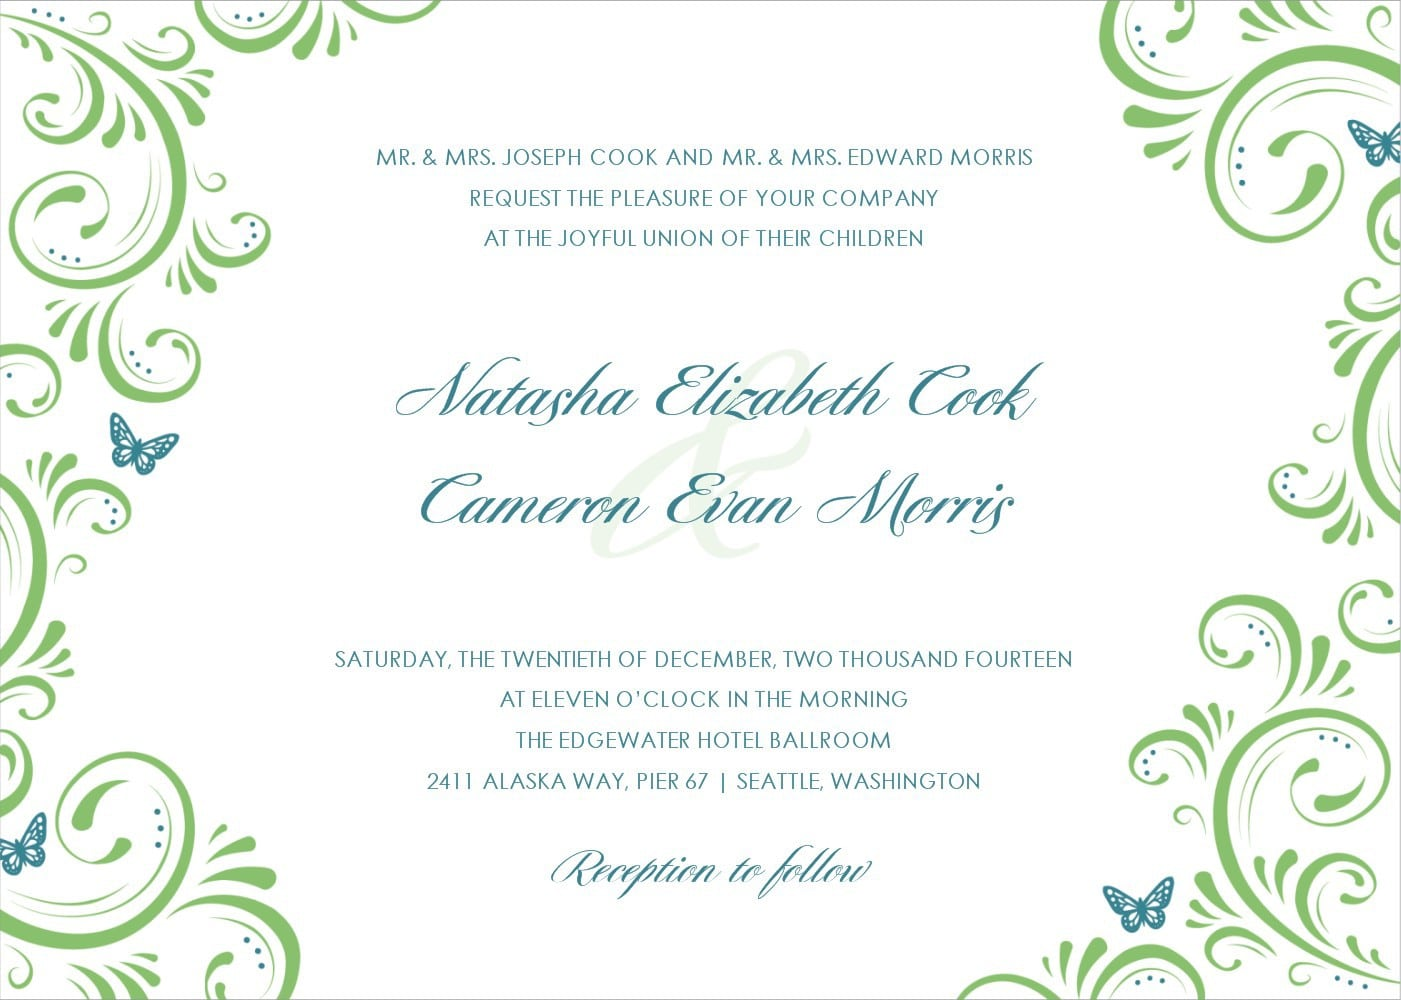 free downloadable invitation templatesBaptism Invitations Blank Templates Free Download K0JaTJQM